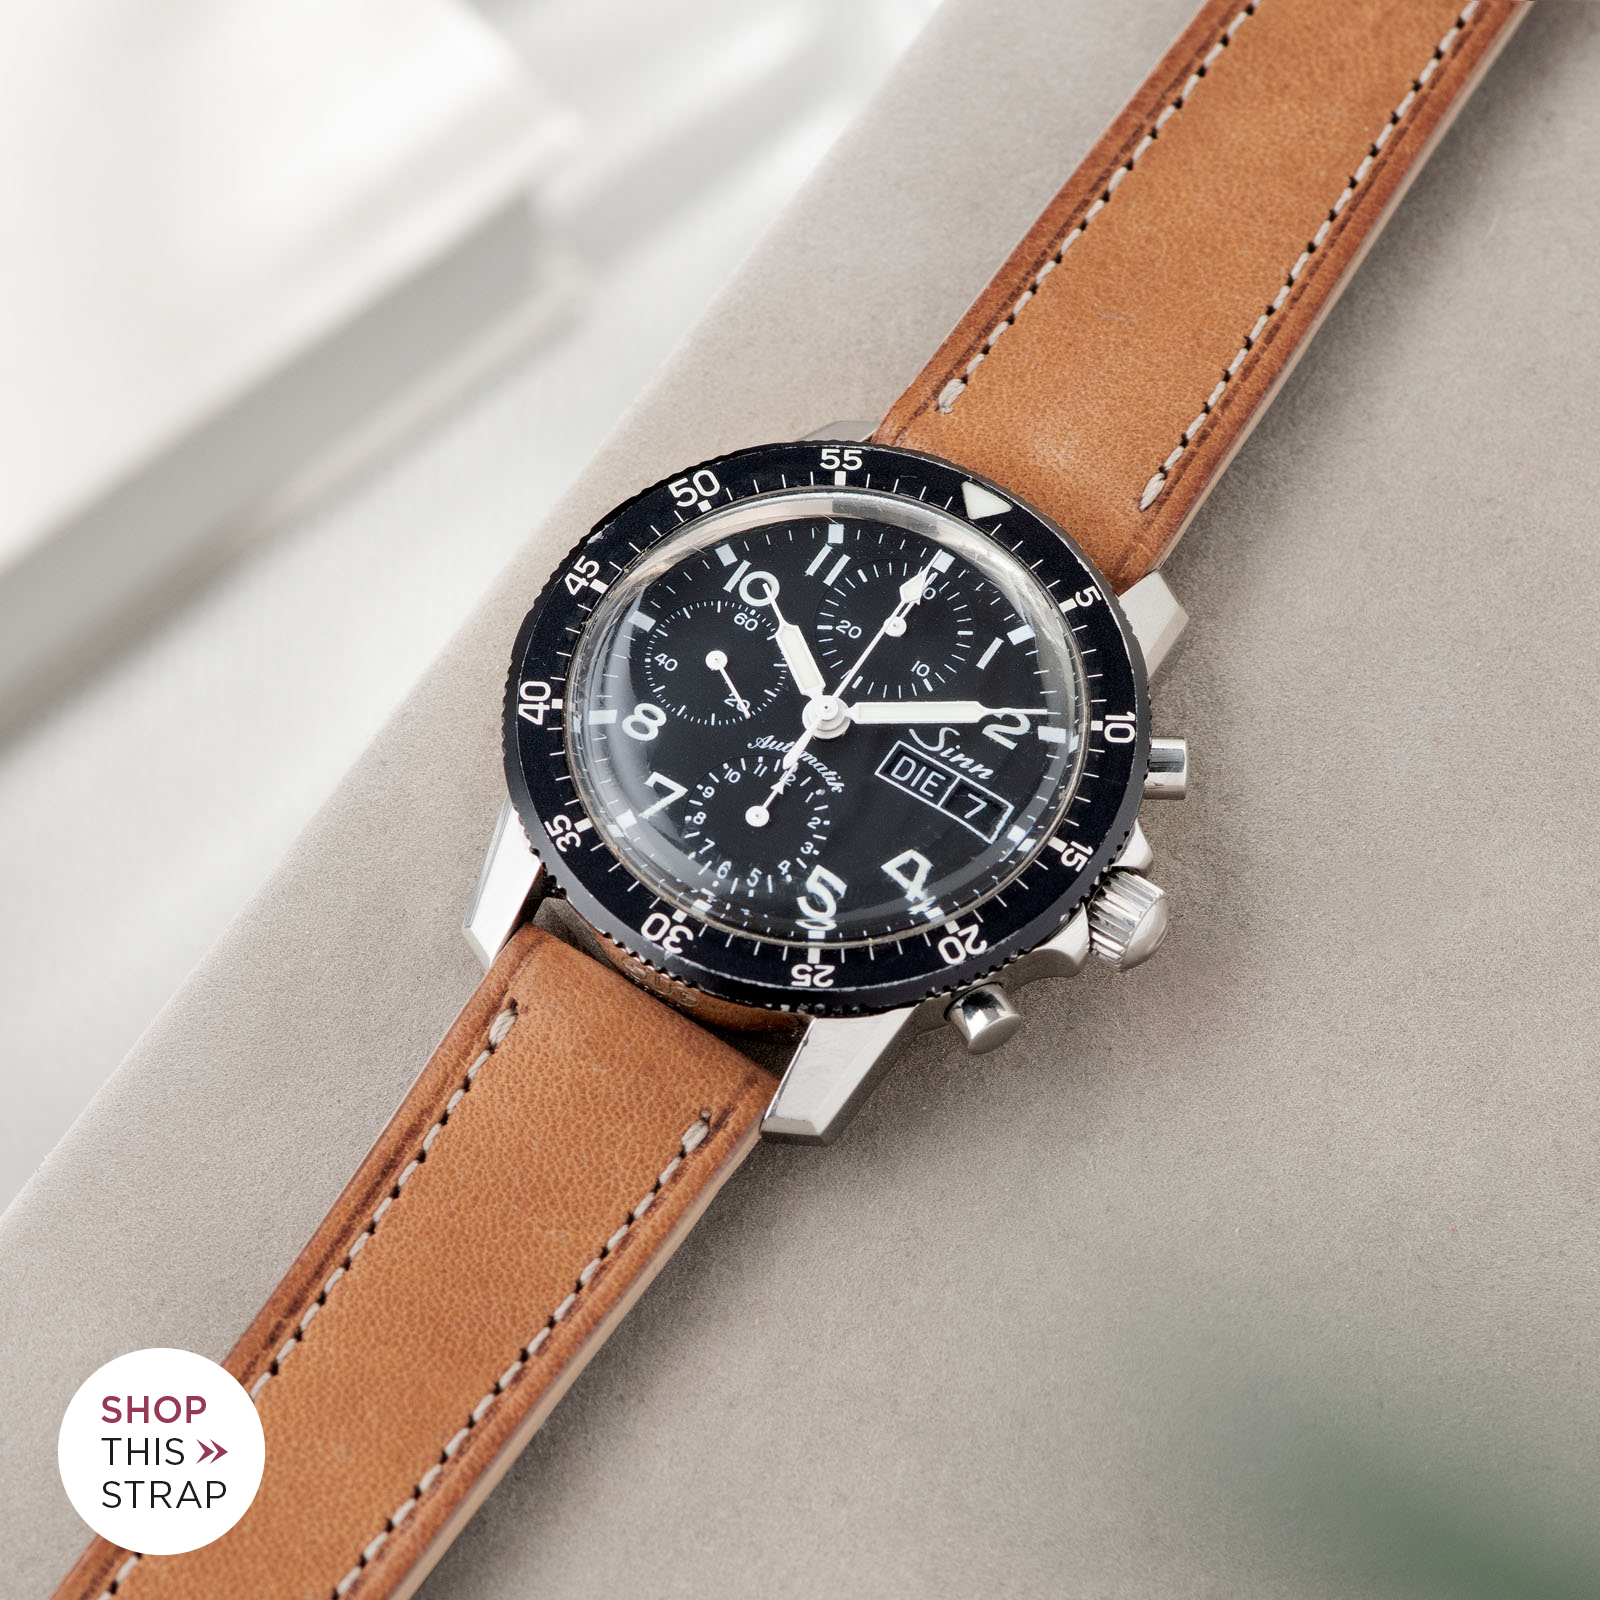 Bulang and Sons_Strap Guide_Sinn 103_Cosaro Brown Retro Leather Watch Strap